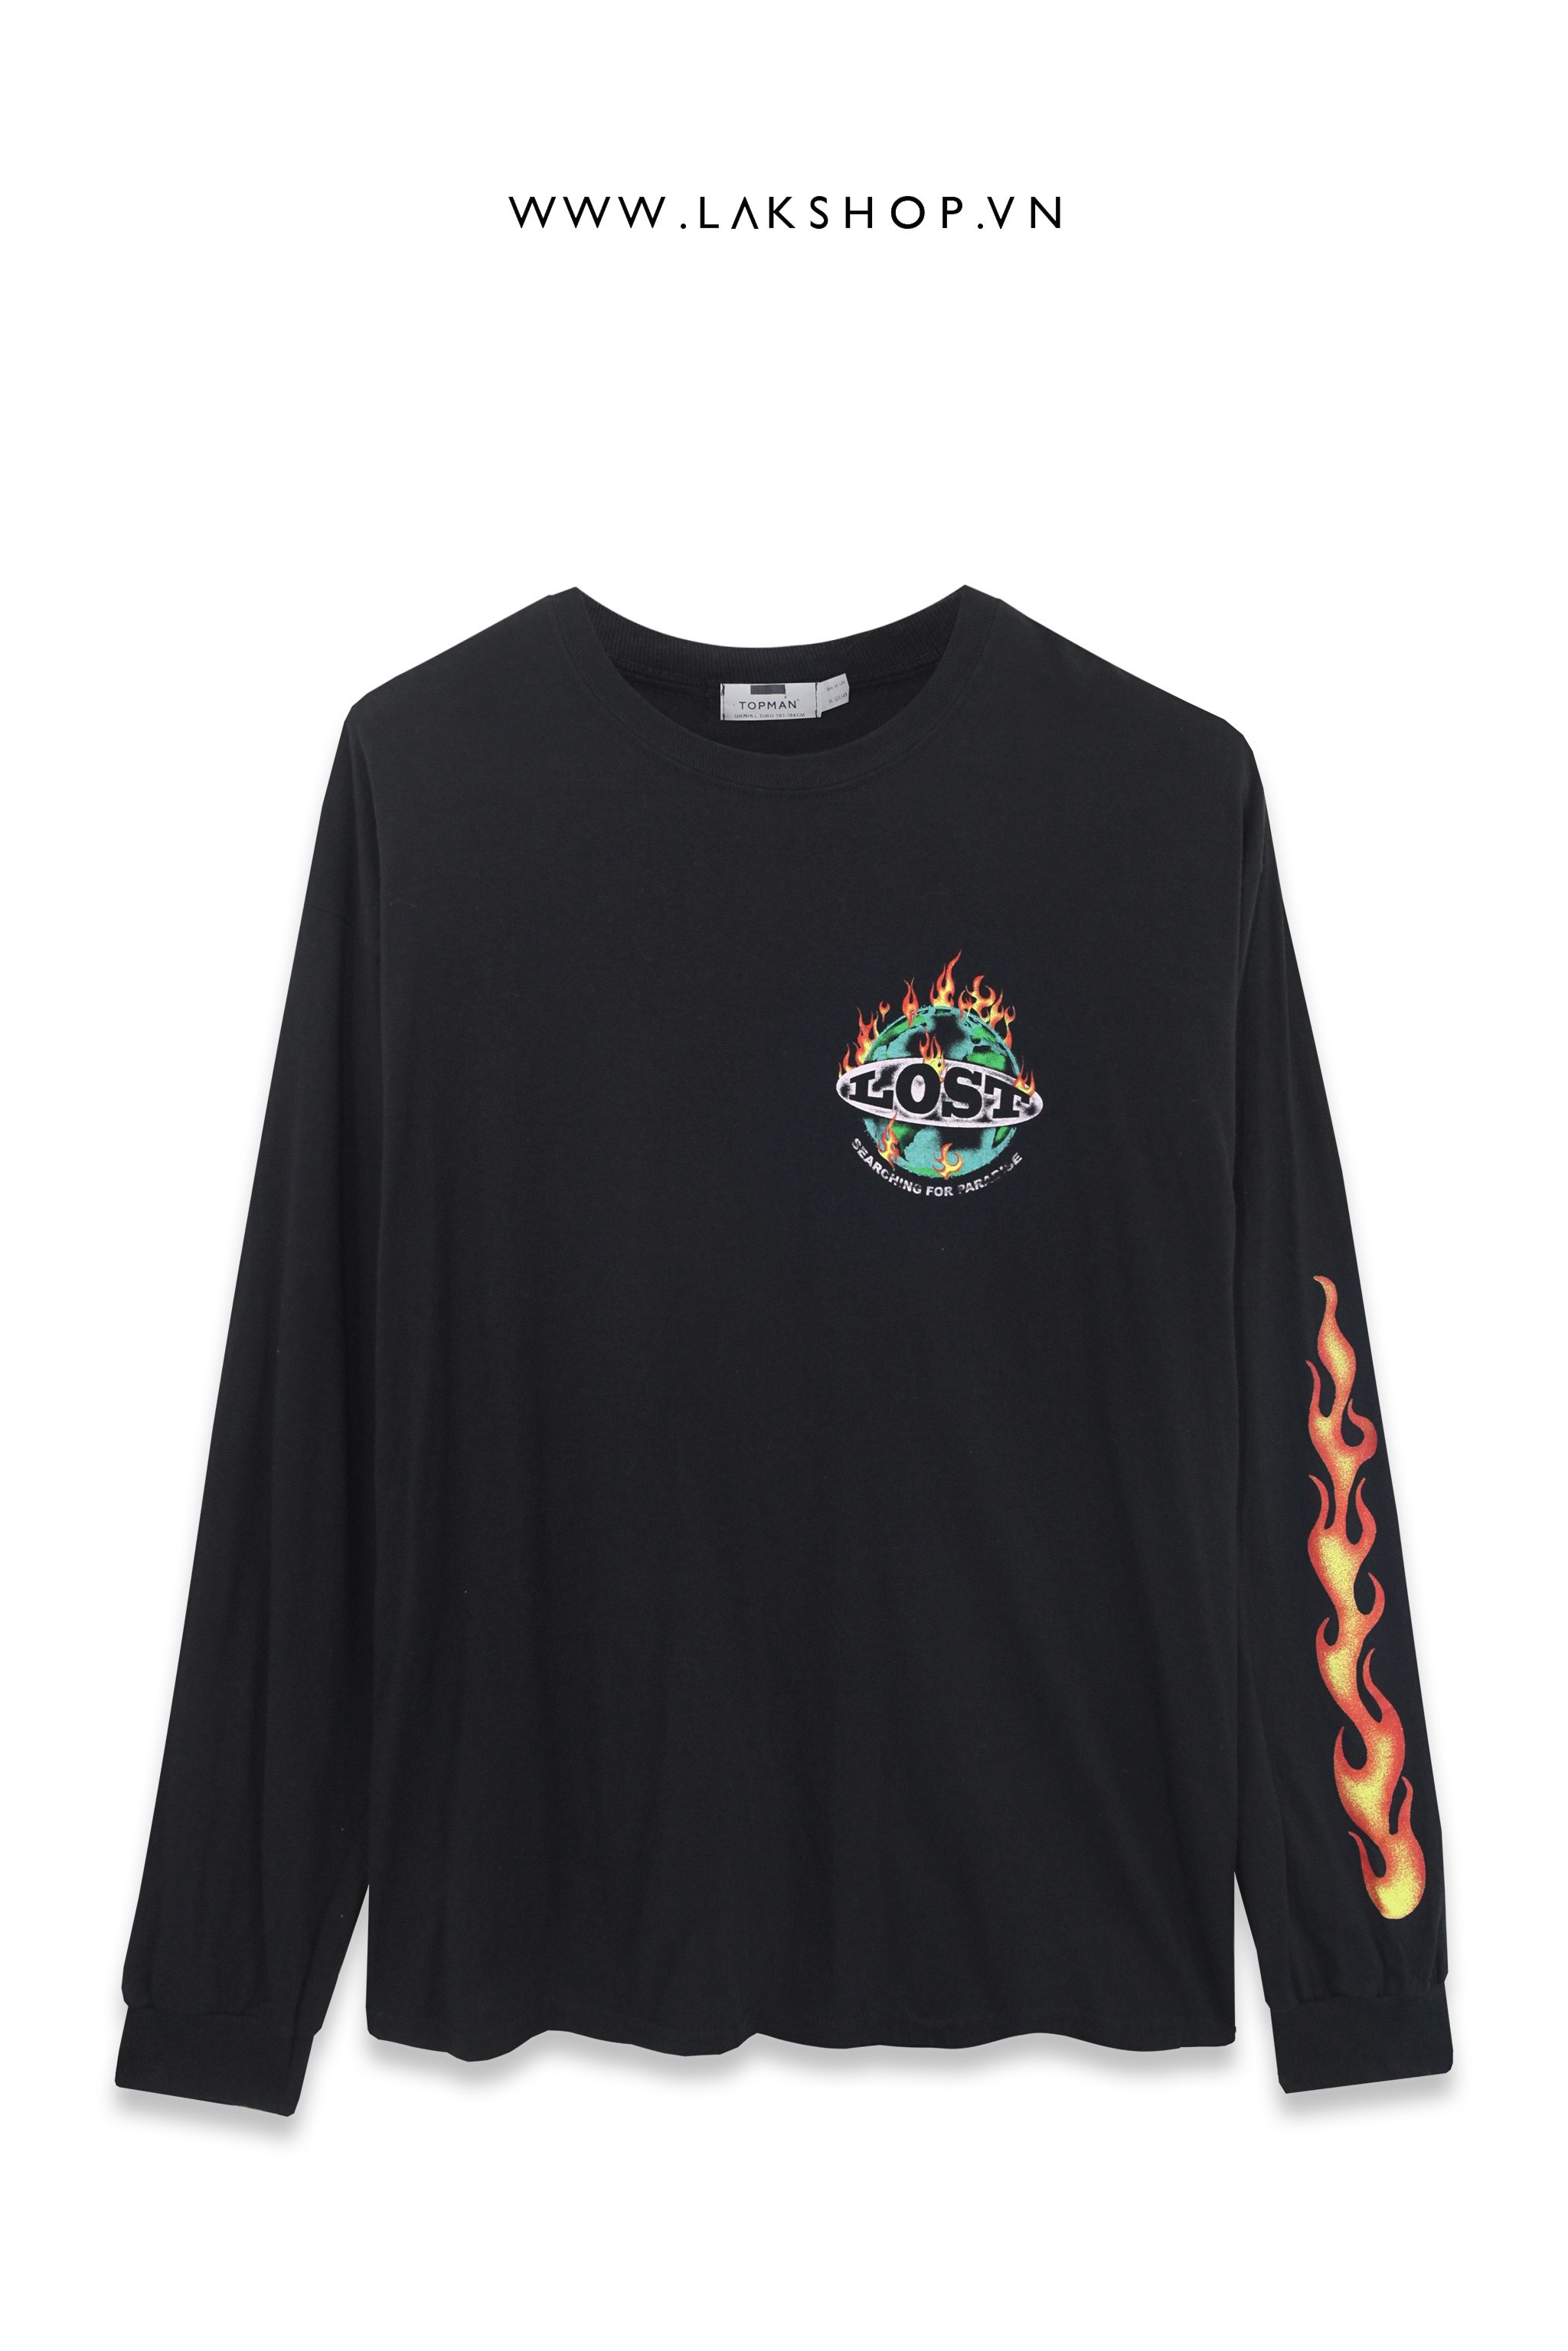 Topman Lost Flame Sweatshirt